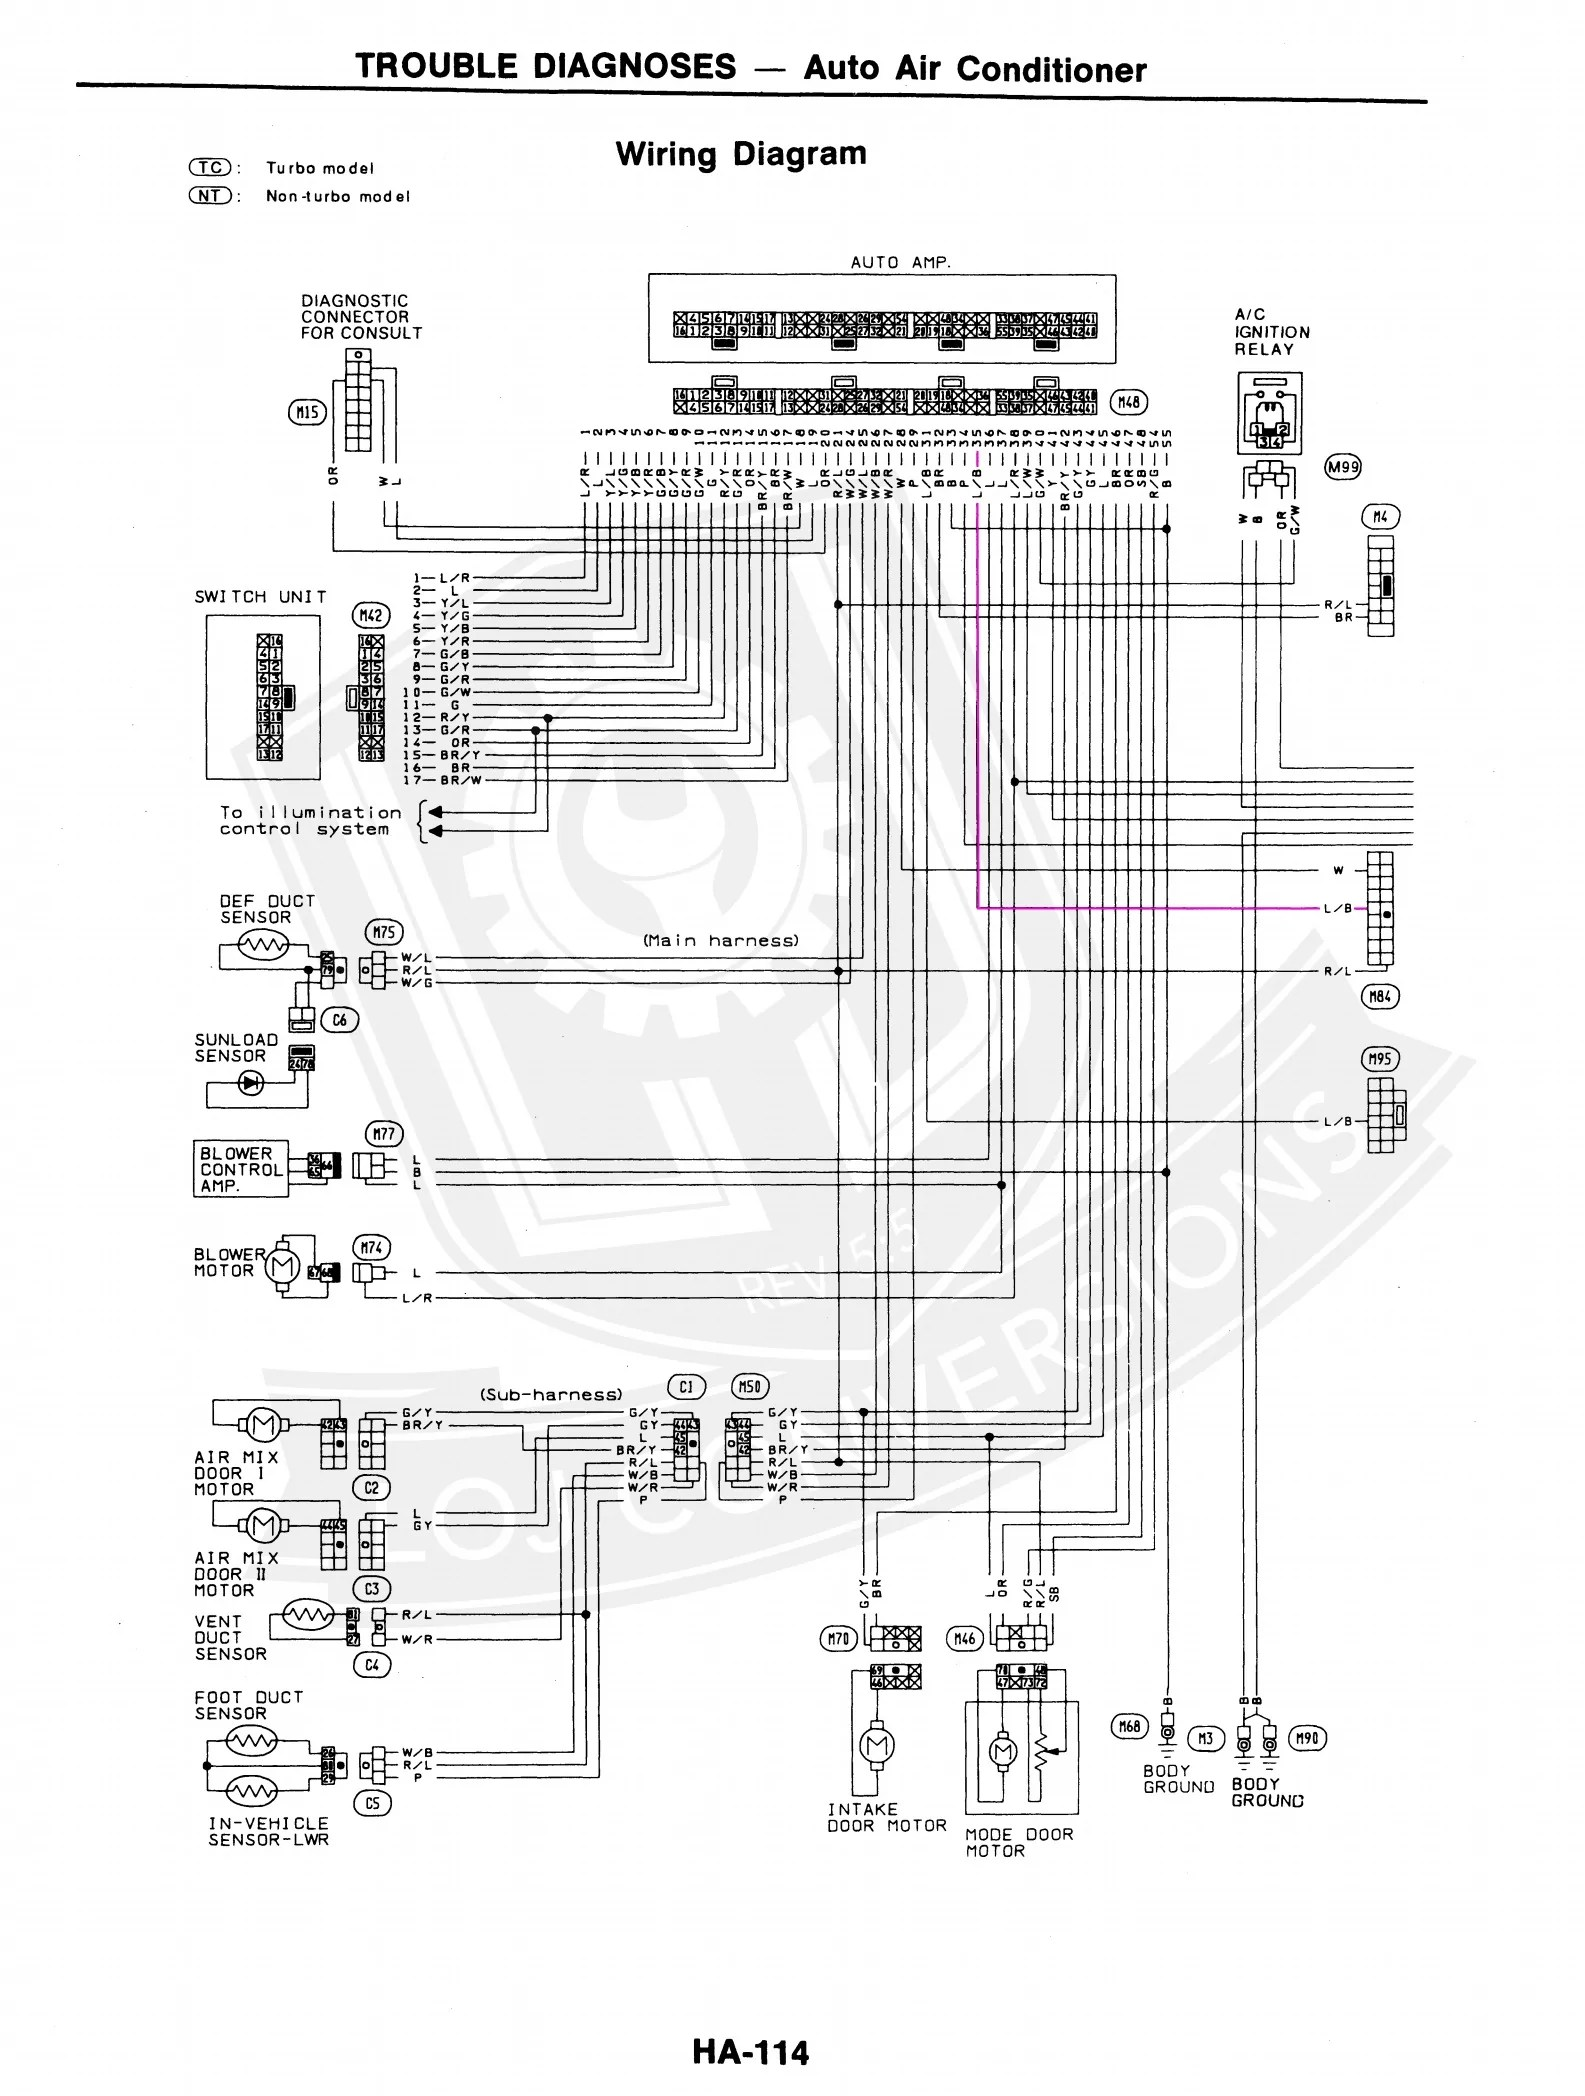 medium resolution of 300zx turbo wiring diagram wiring diagram nissan datsun 300zx turbo exhaust diagram category exhaust diagram